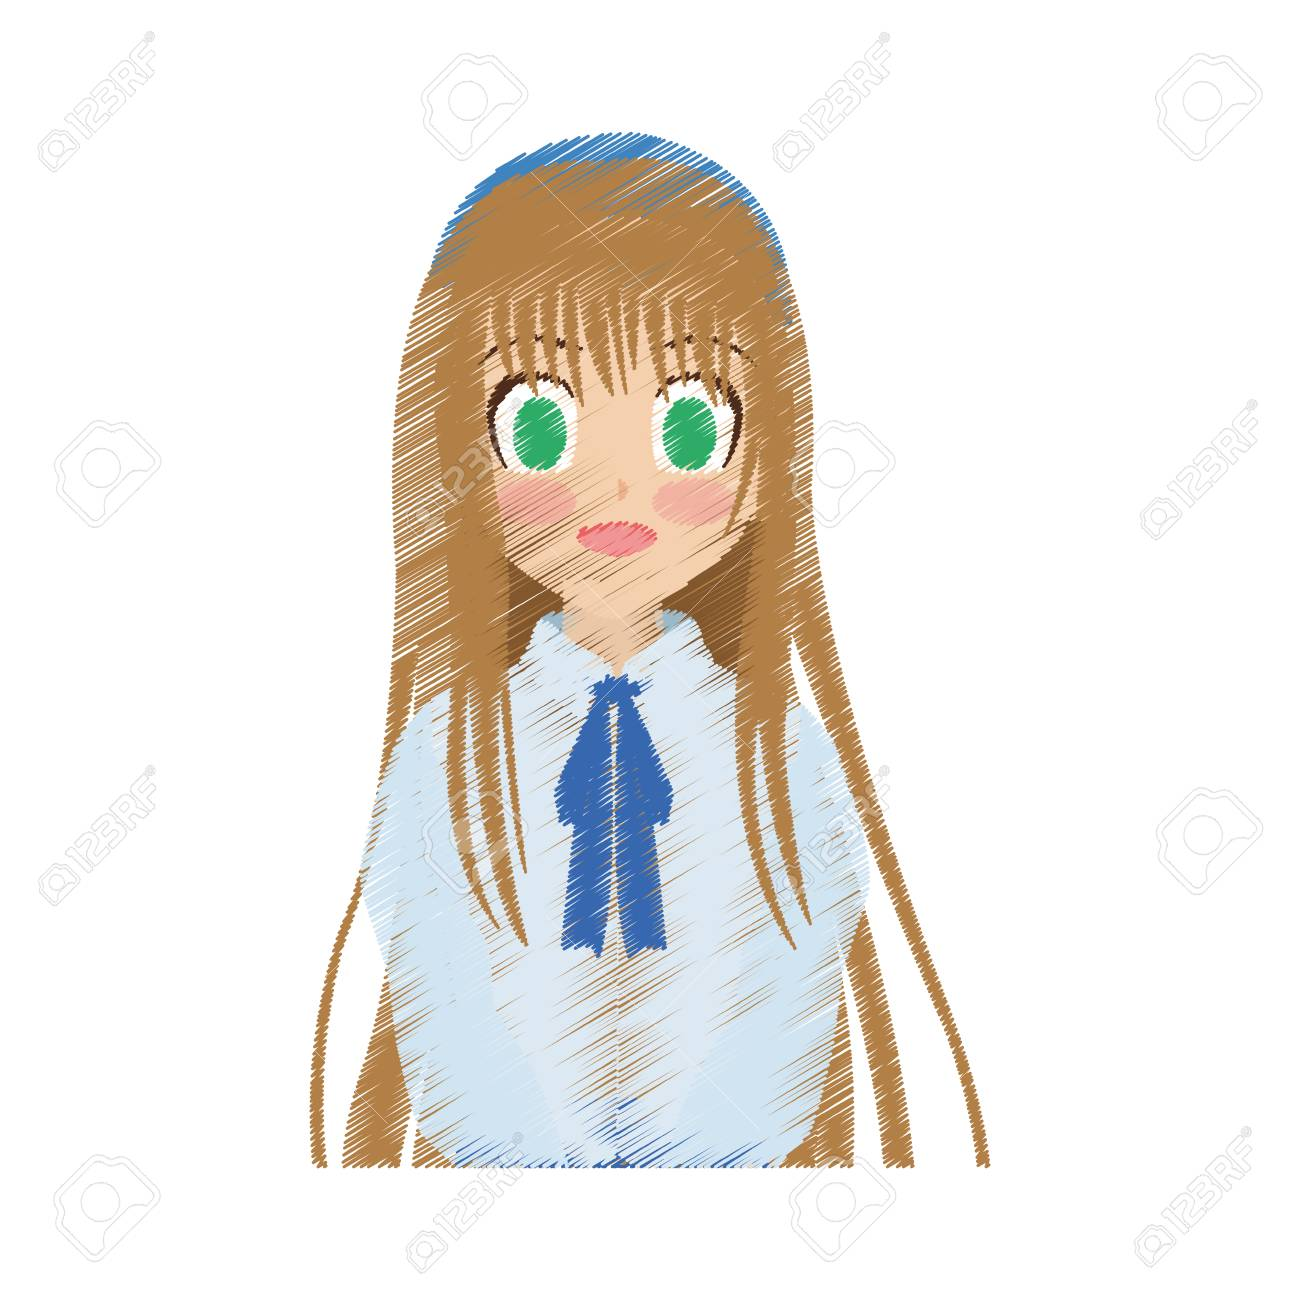 Cute anime or manga school girl with light brown hair and green eyes icon image vector